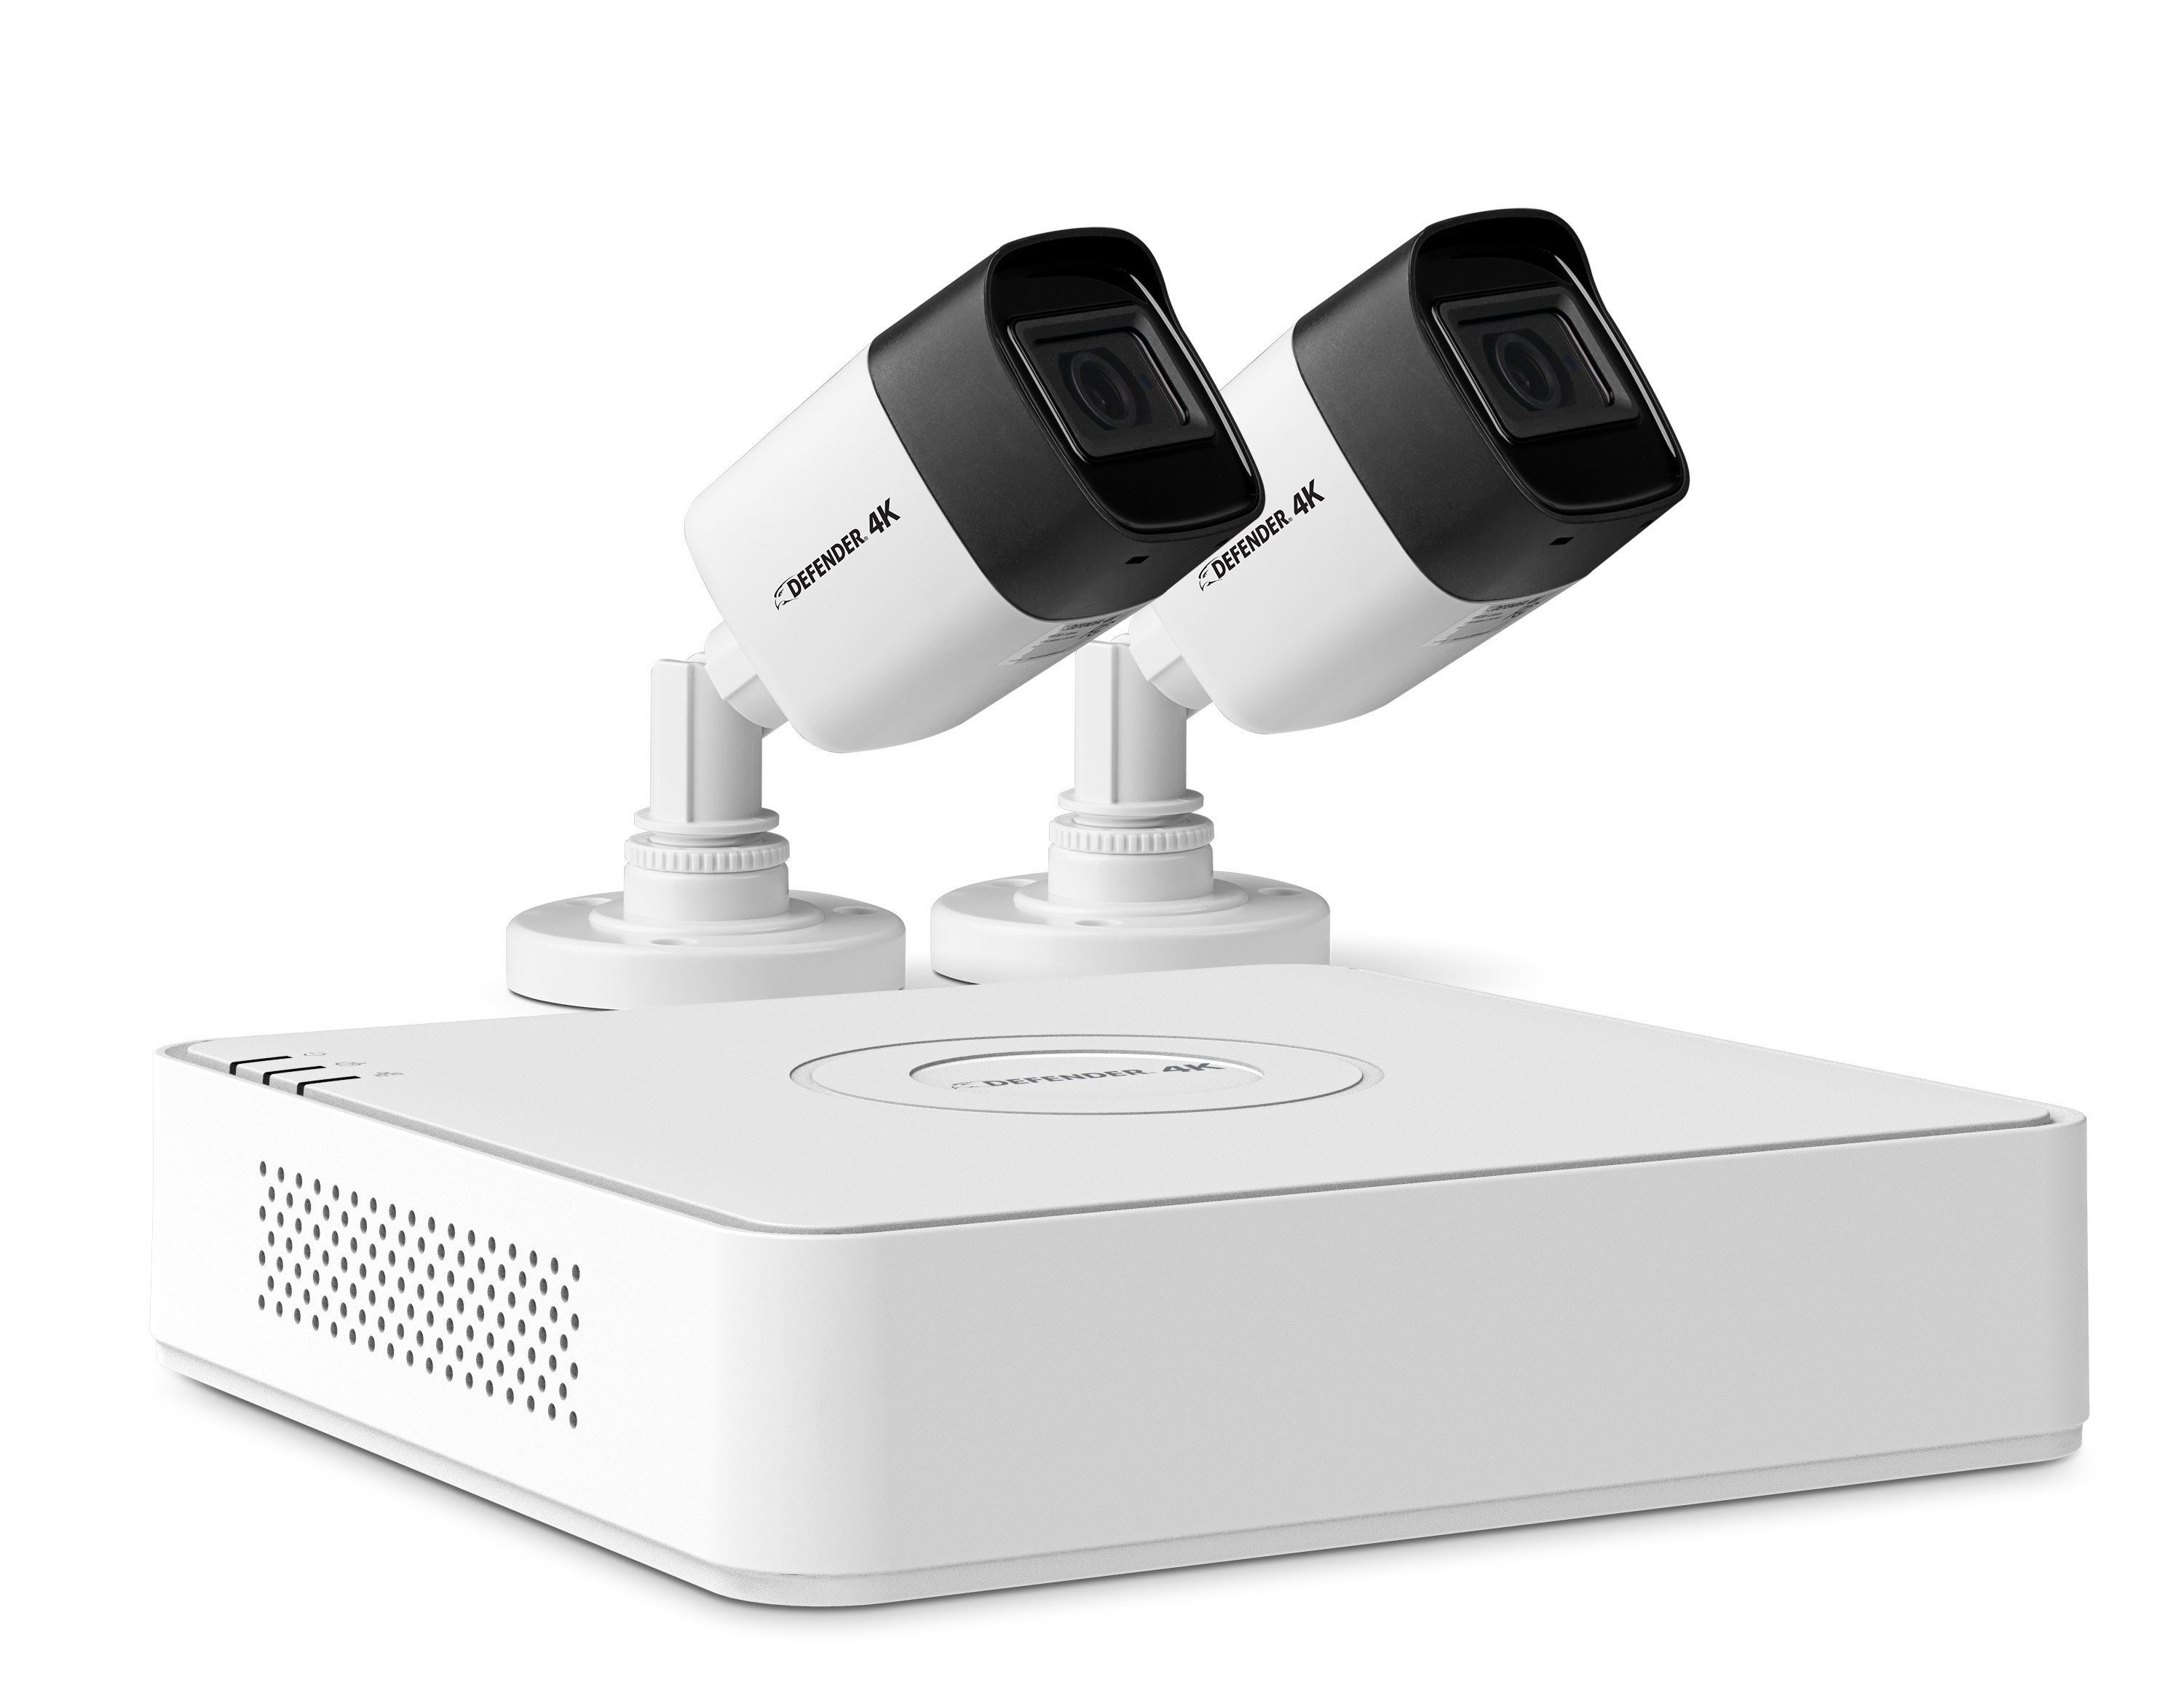 the base and two cameras of the security system